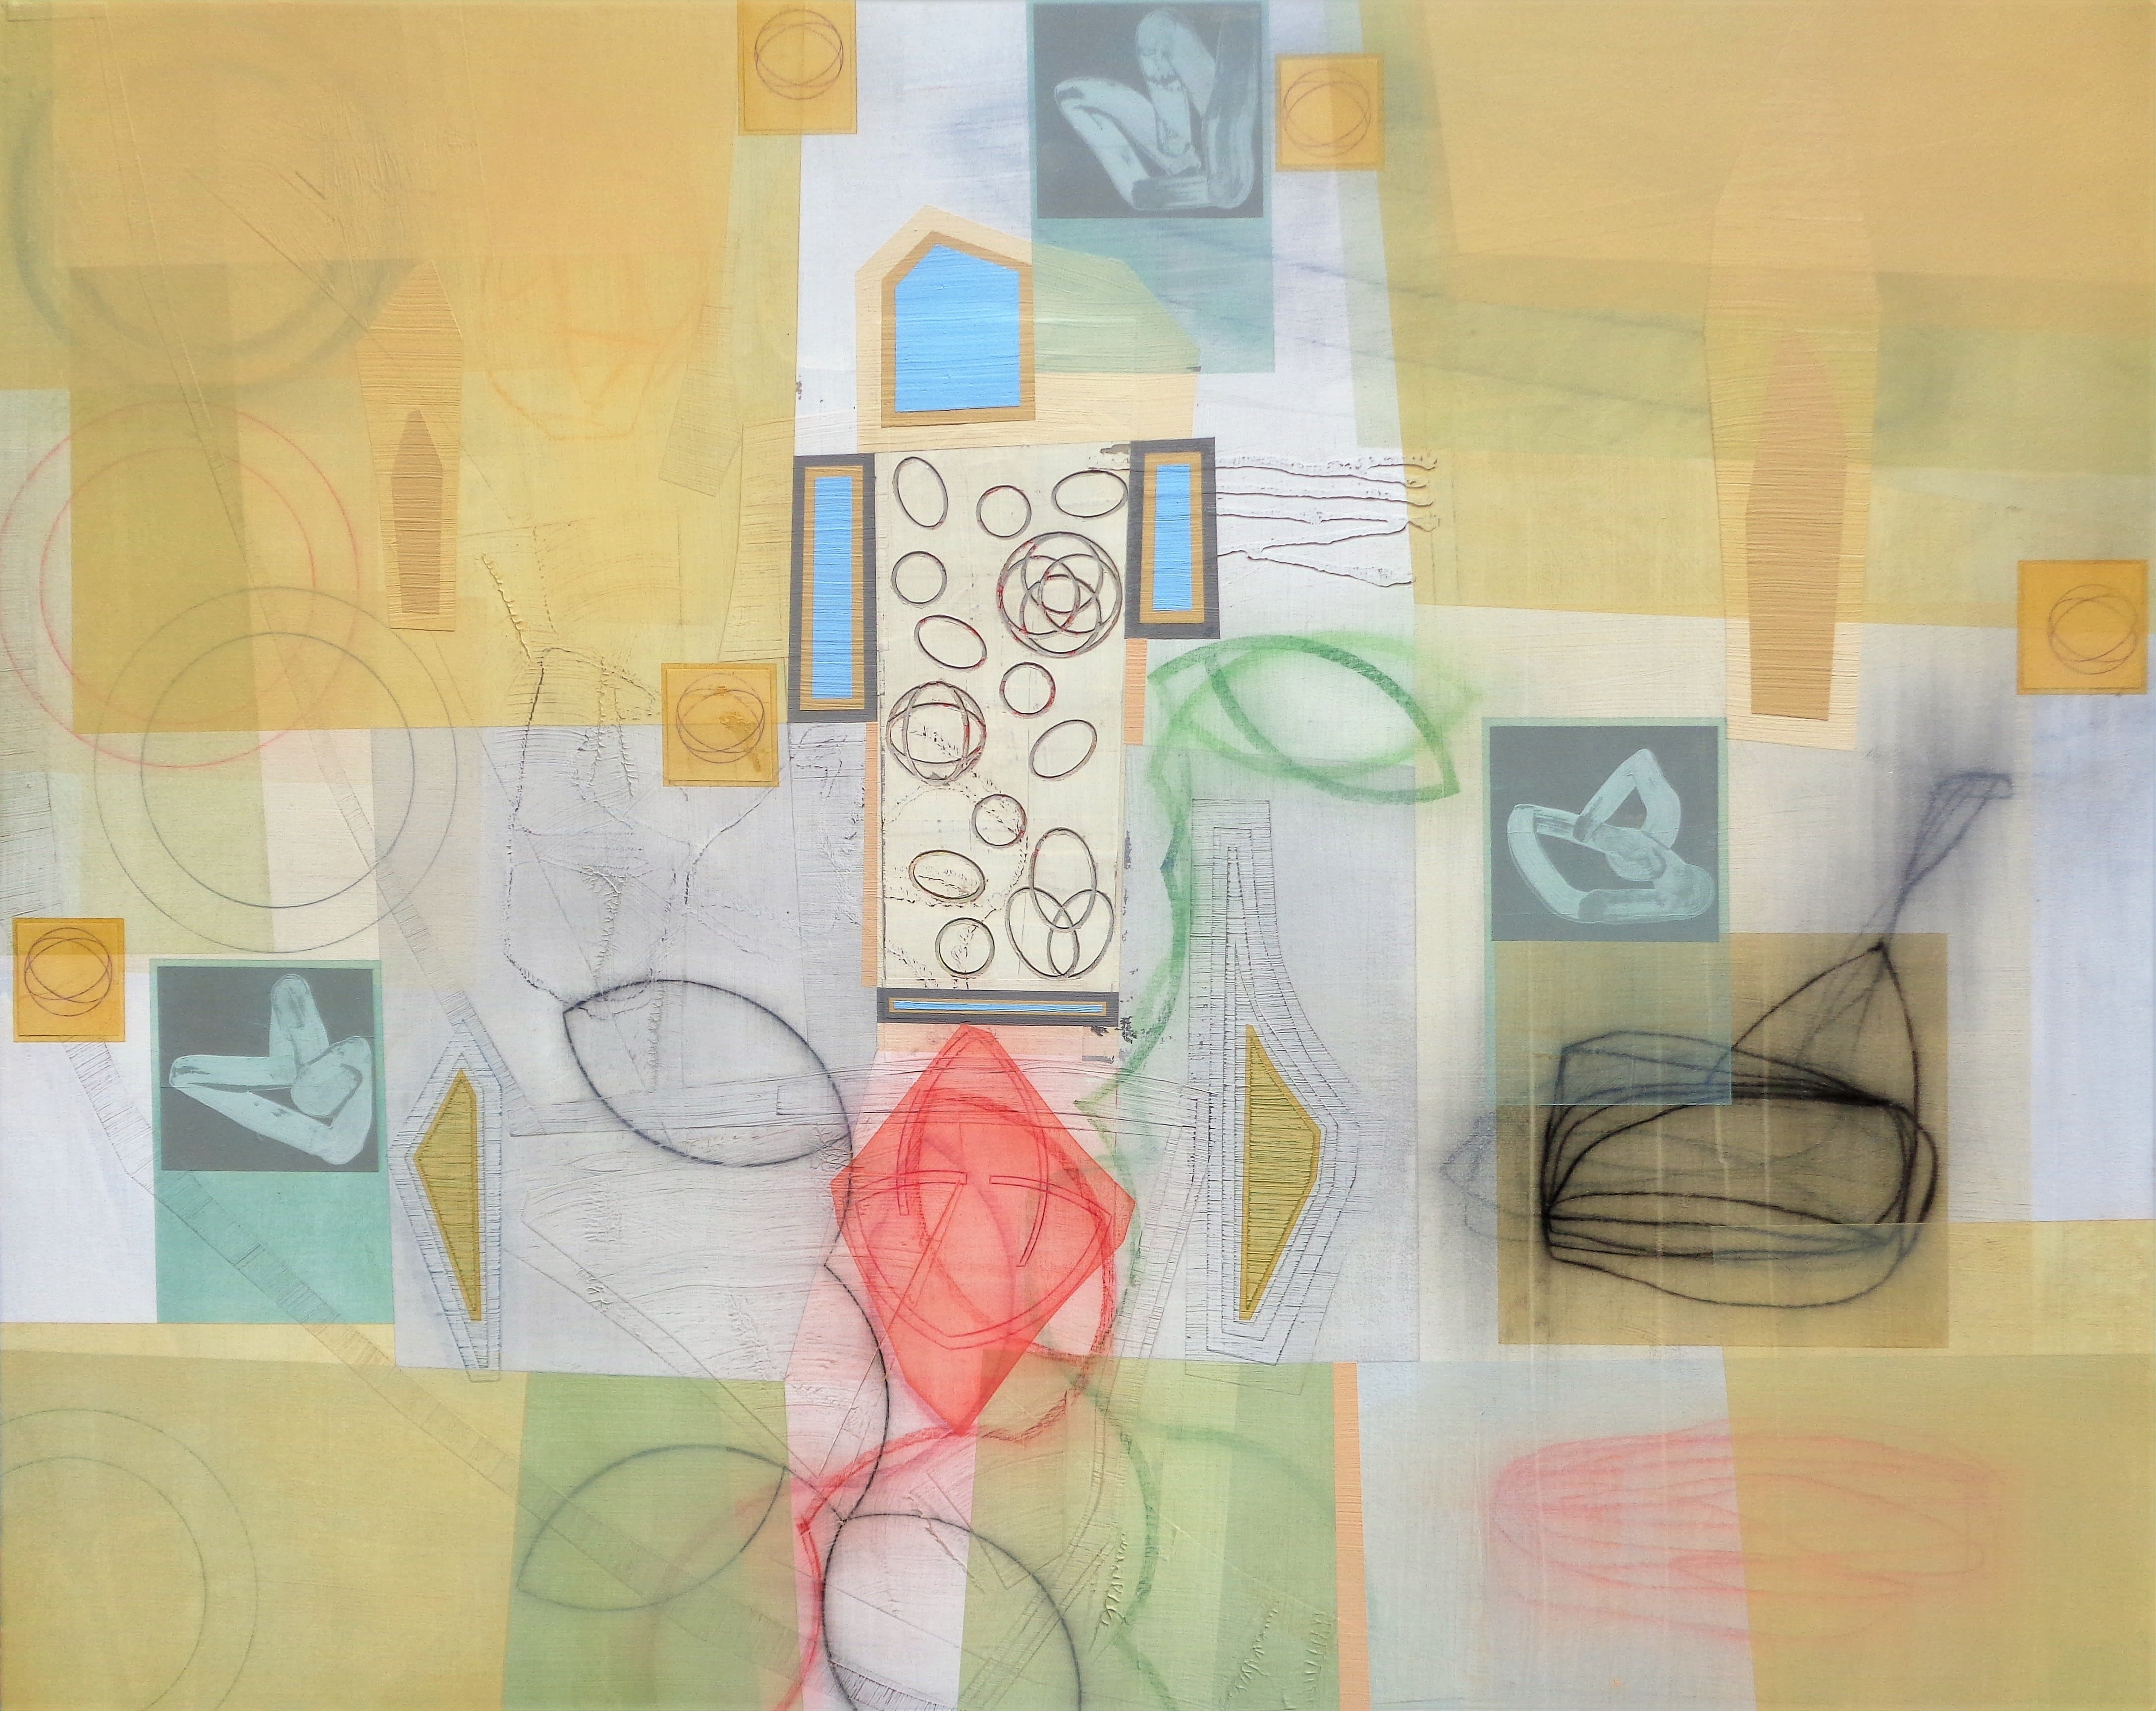 Michael Barringer, Bloomstone (Burnt Norton), mixed media on canvas, 48 x 60 inches